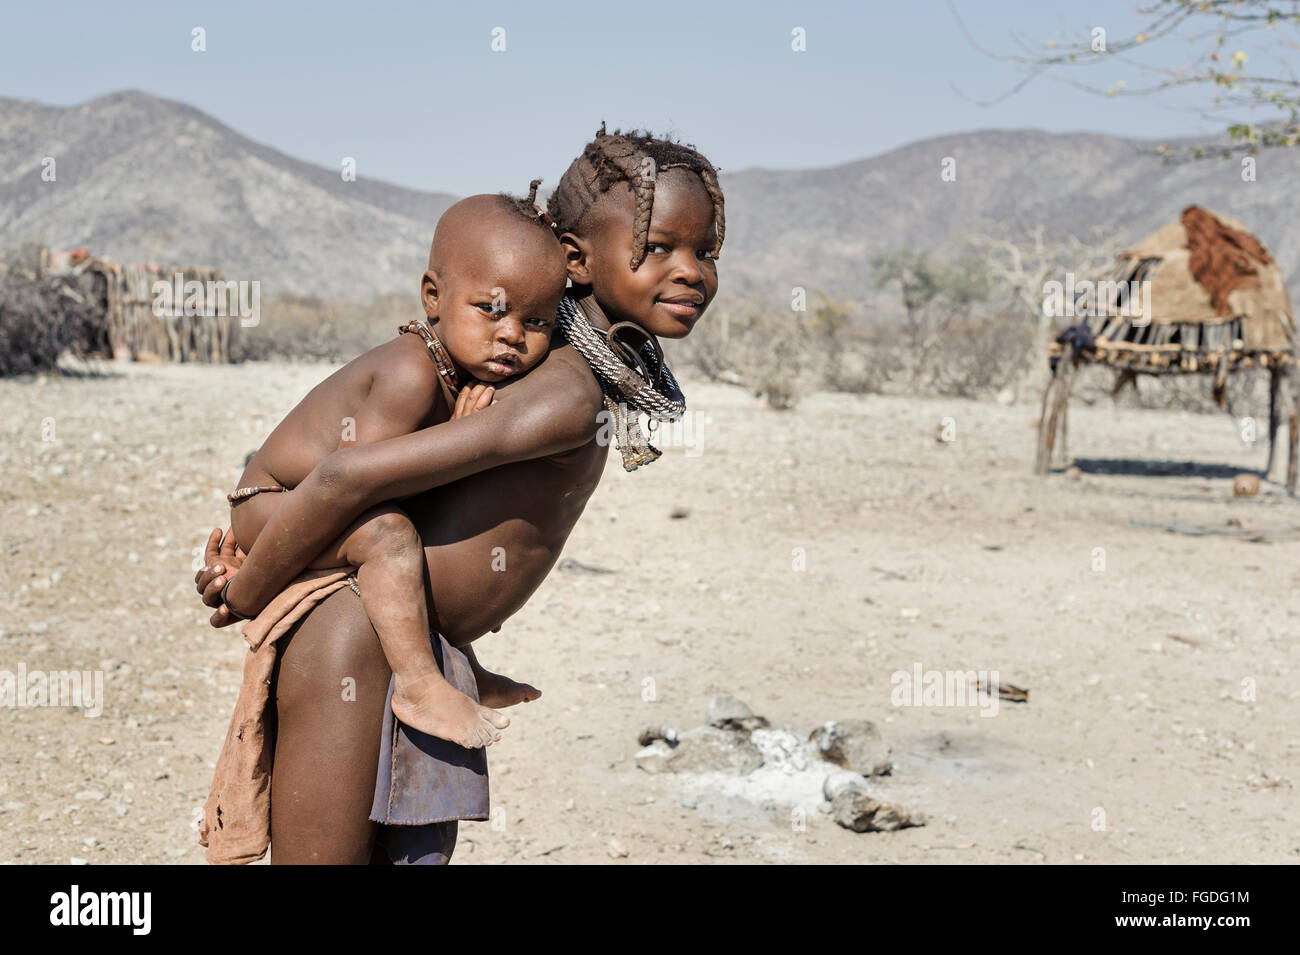 Himba child carrying her sister on her back around their remote village. - Stock Image